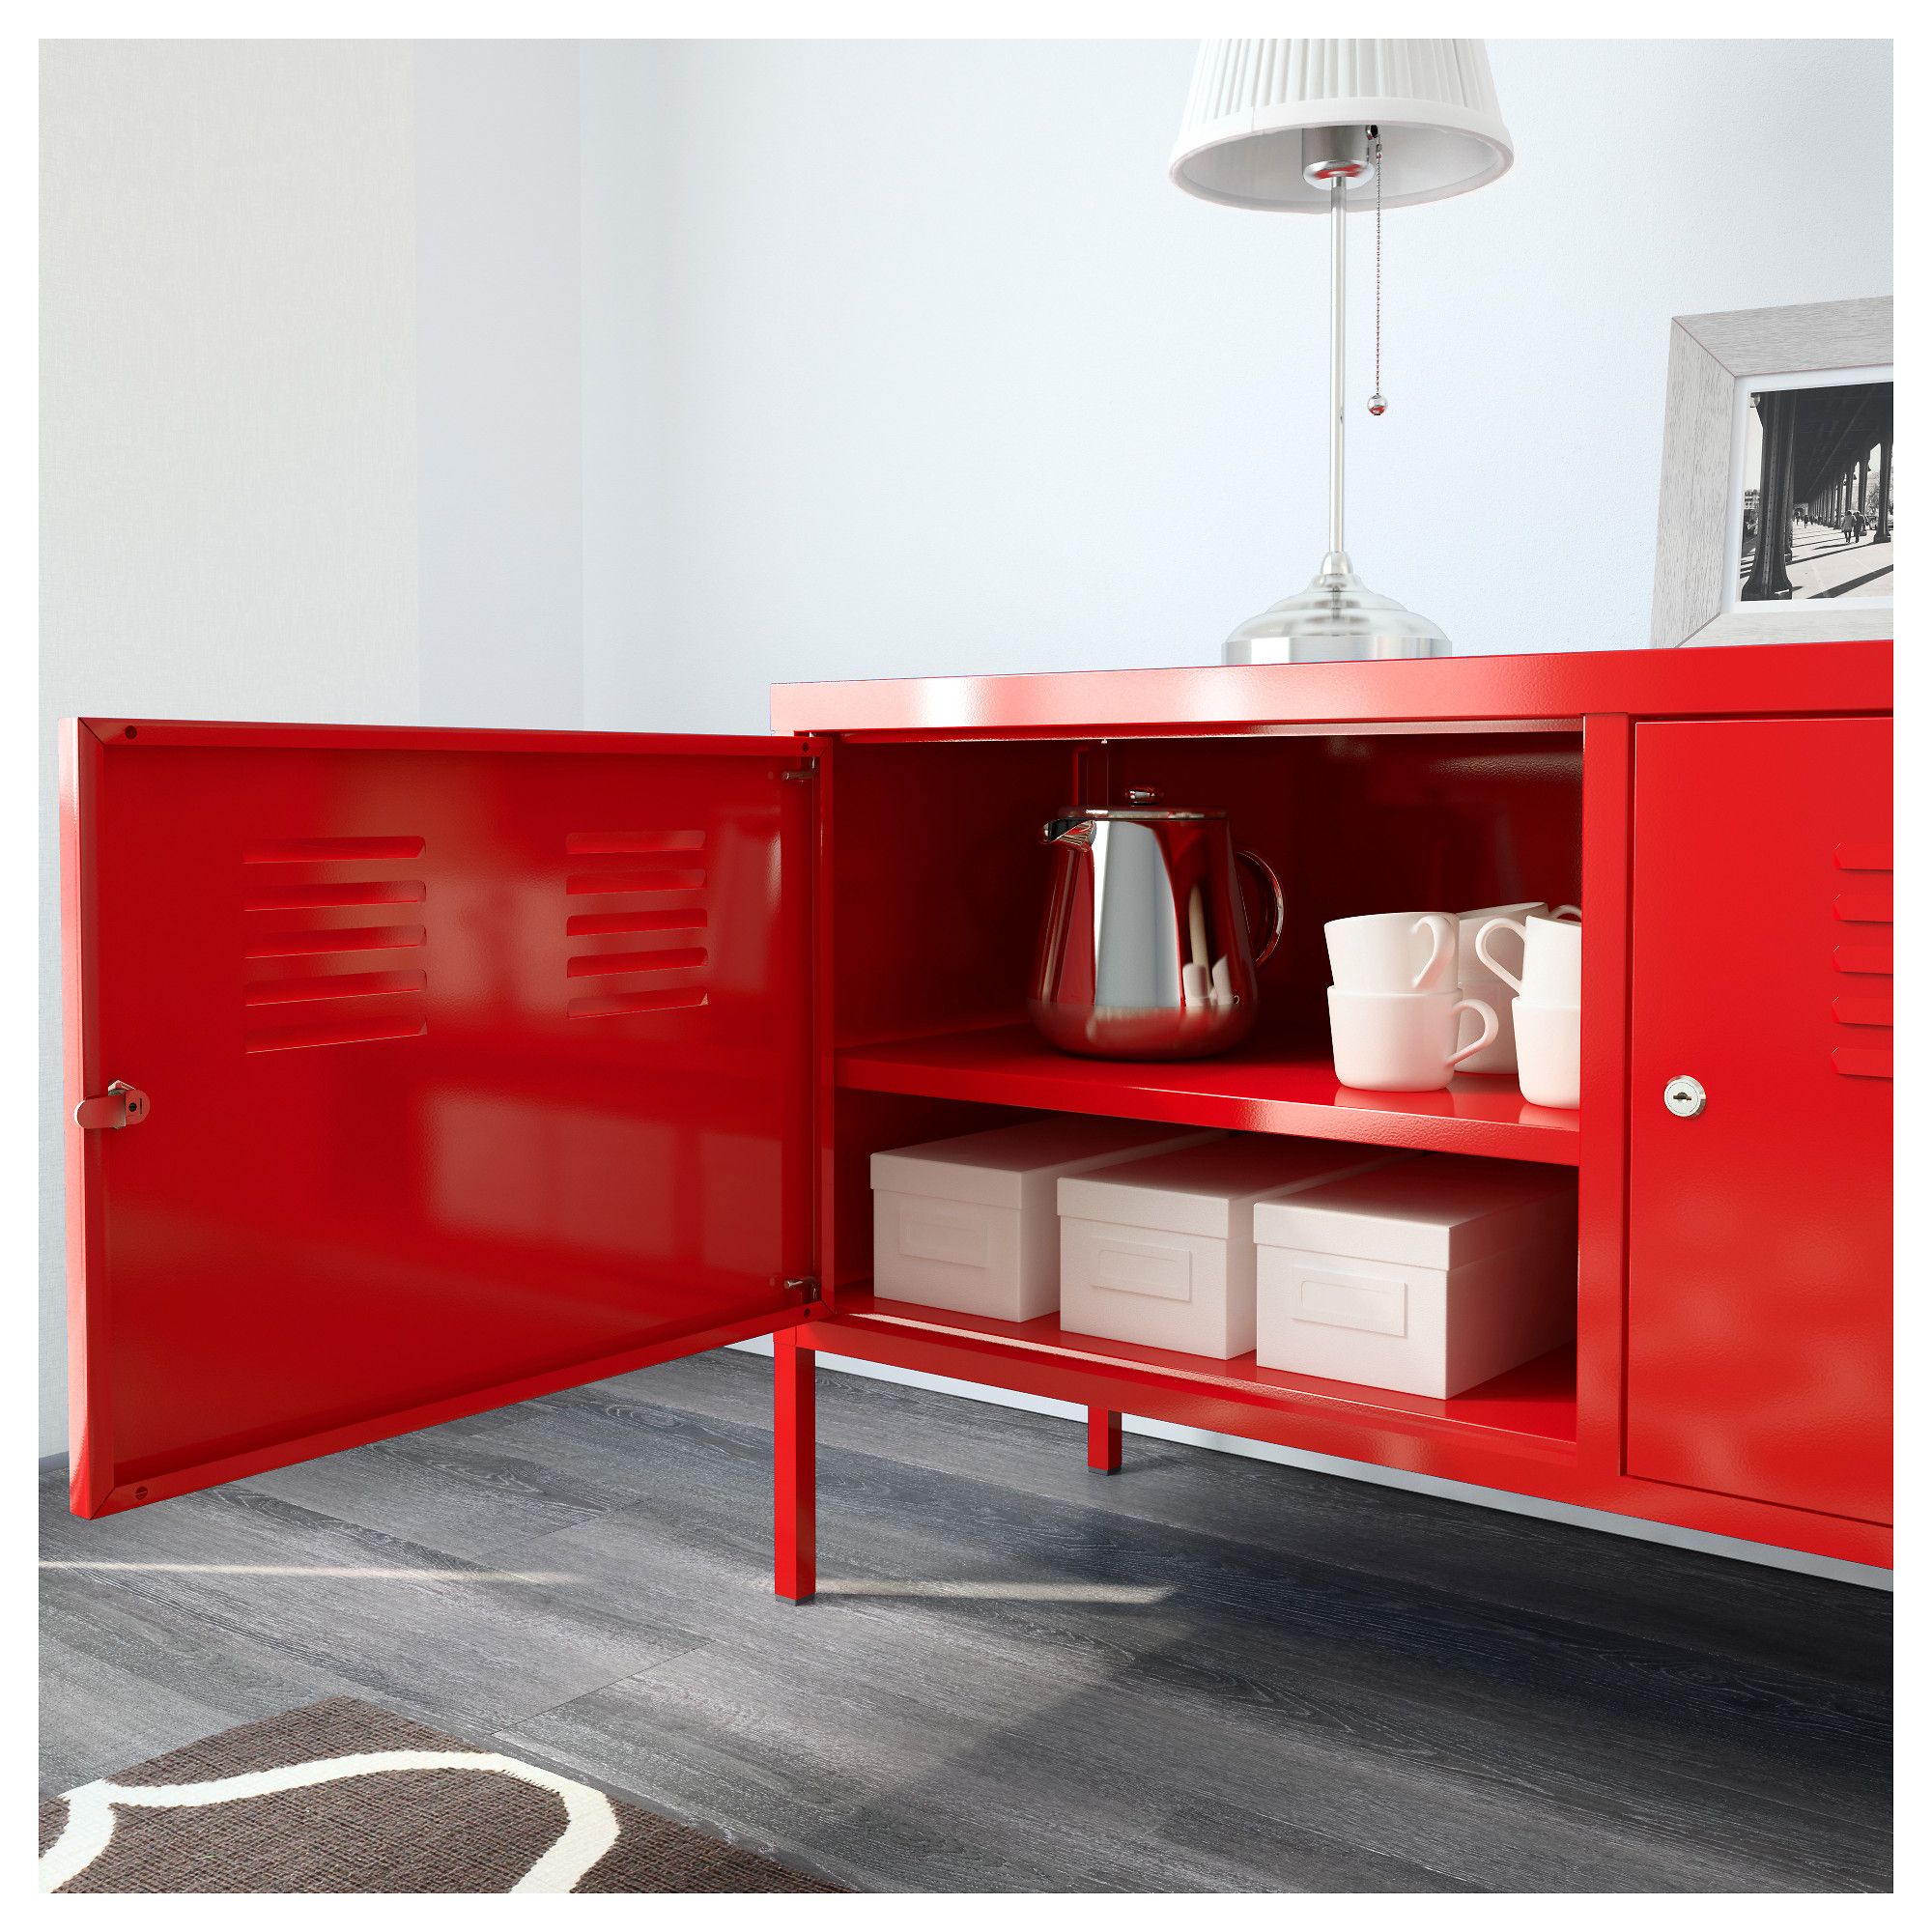 IKEA PS Cabinet - red - IKEA